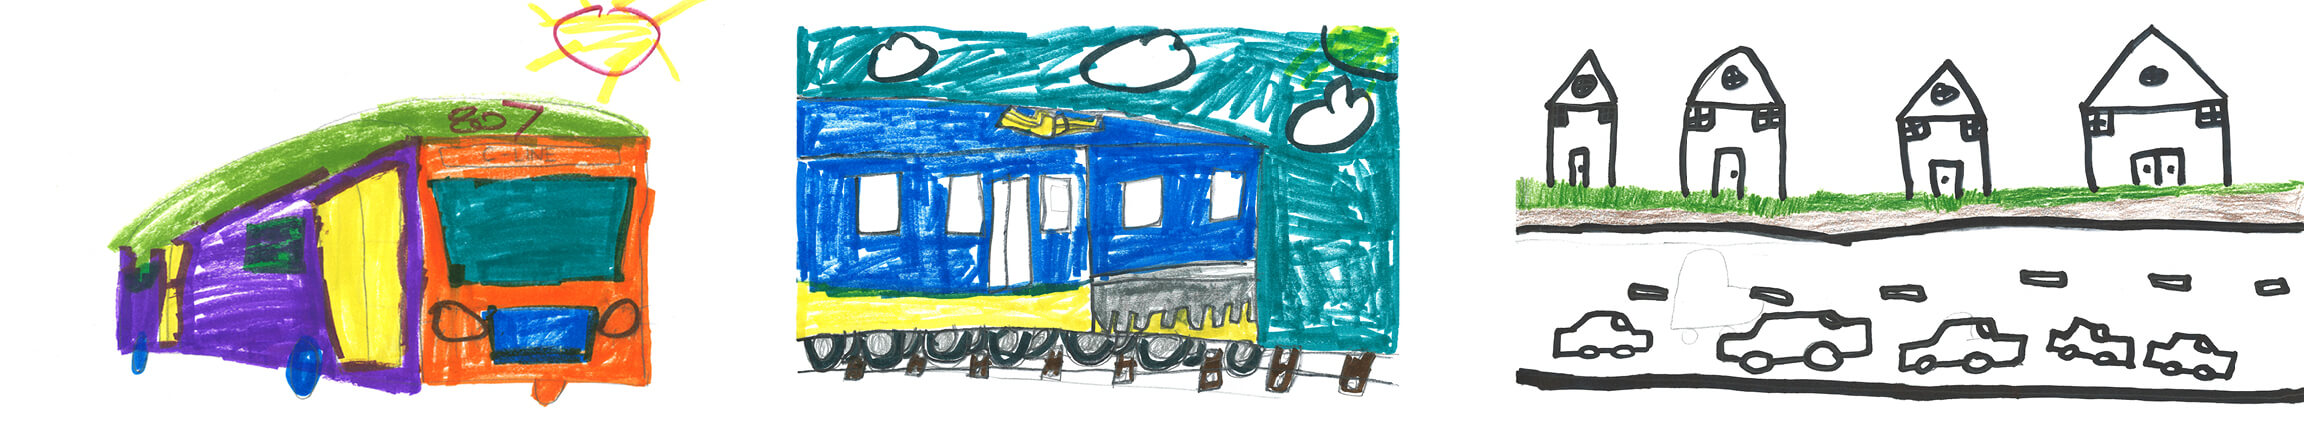 Transportation-themed artwork from local elementary school students.